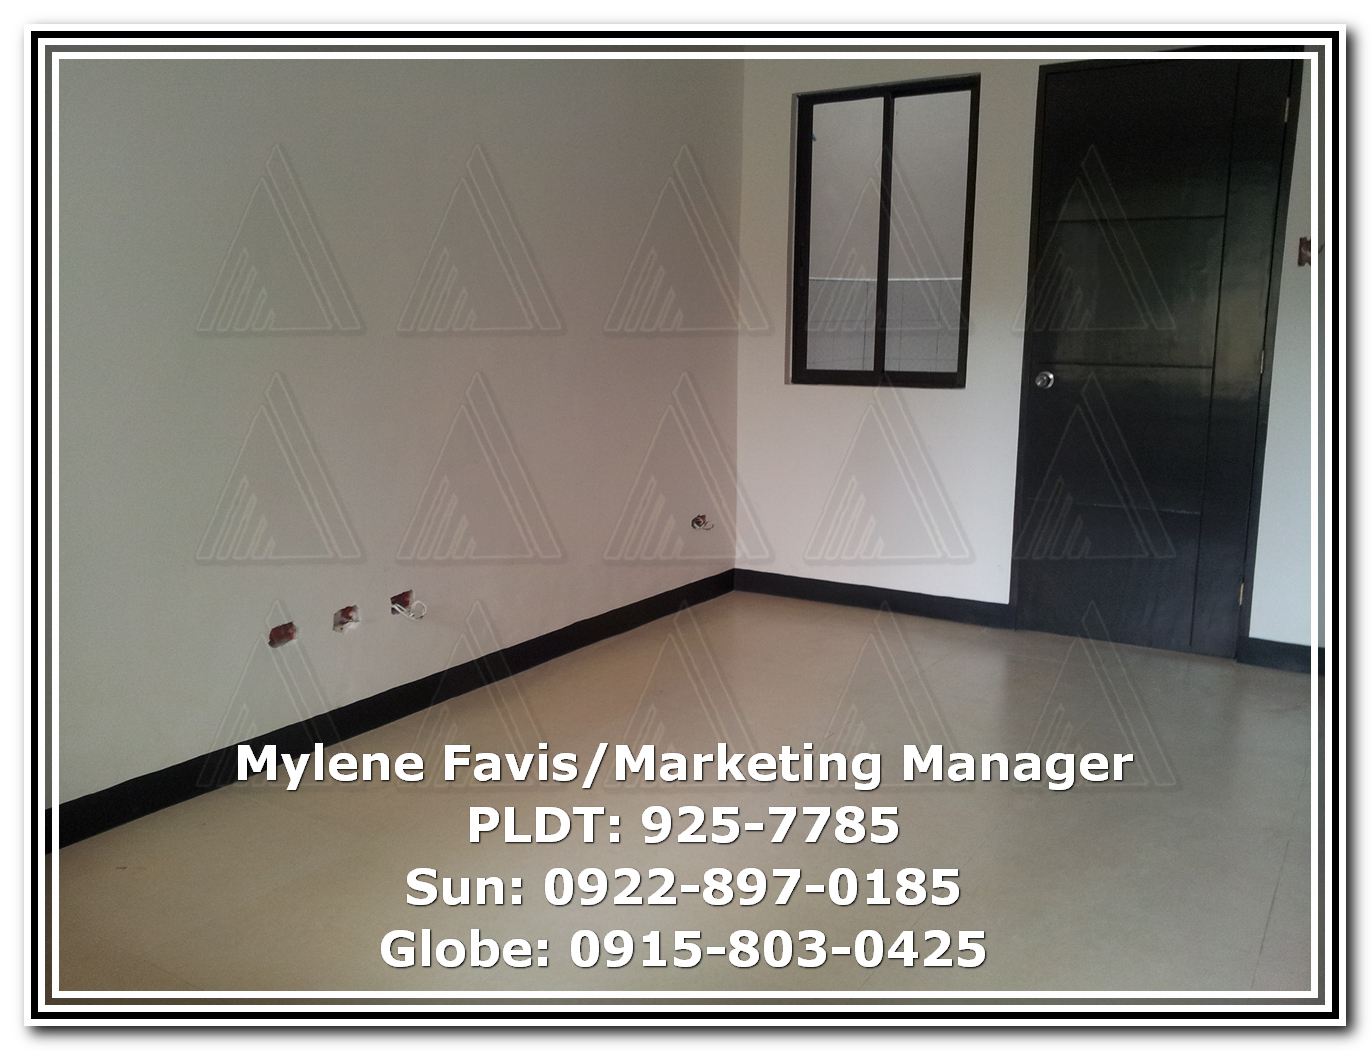 FOR SALE: Apartment / Condo / Townhouse Manila Metropolitan Area > Marikina 5